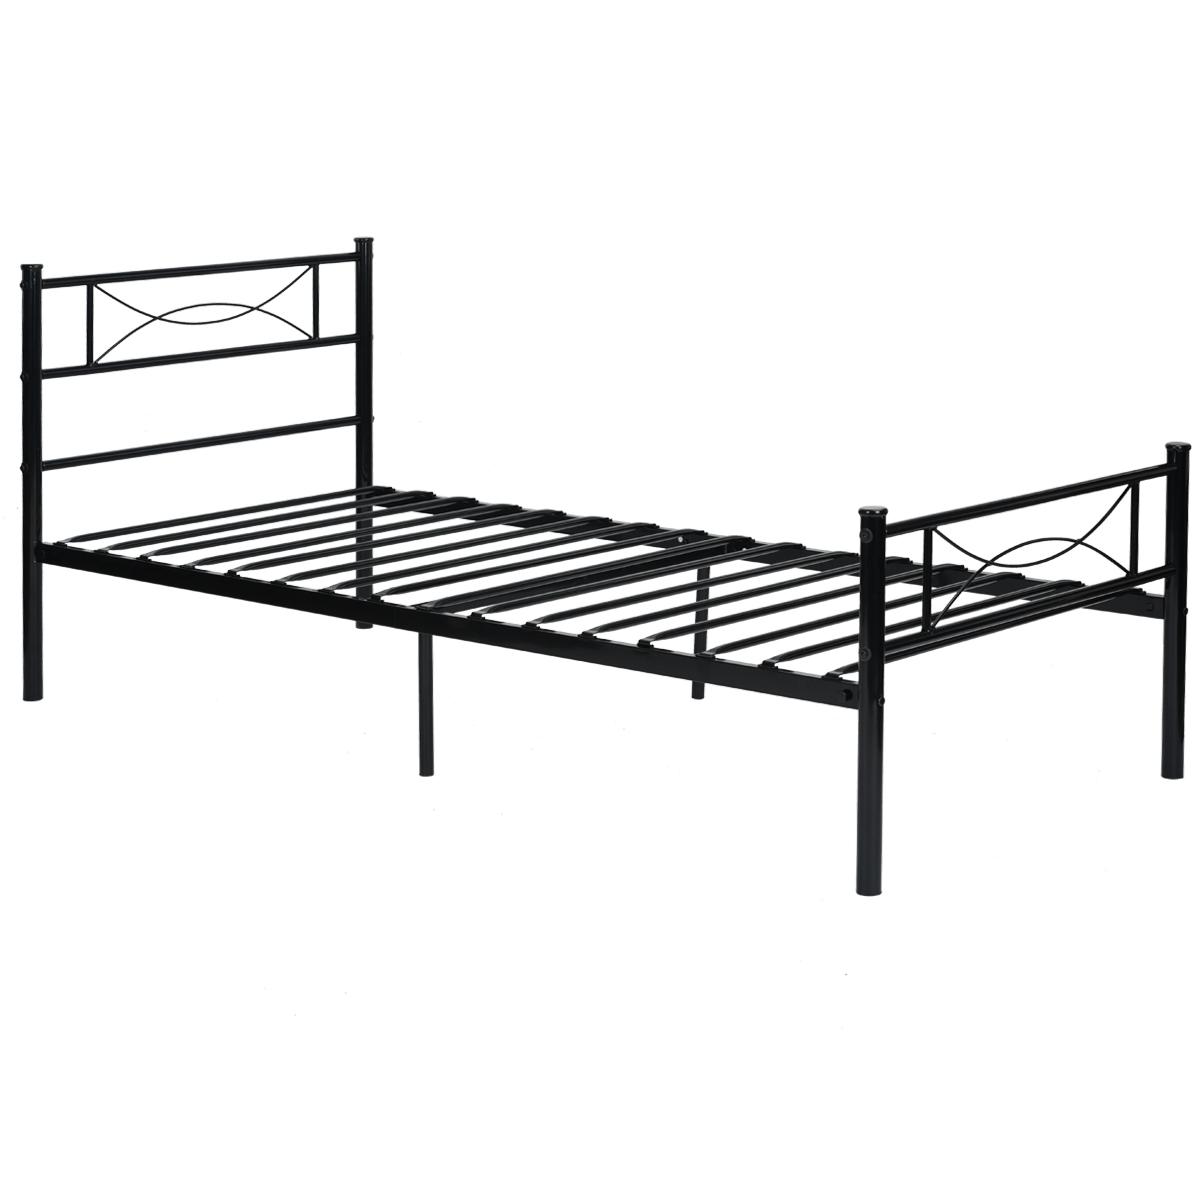 Bedroom metal bed frame platform mattress foundation Metal twin bed frame